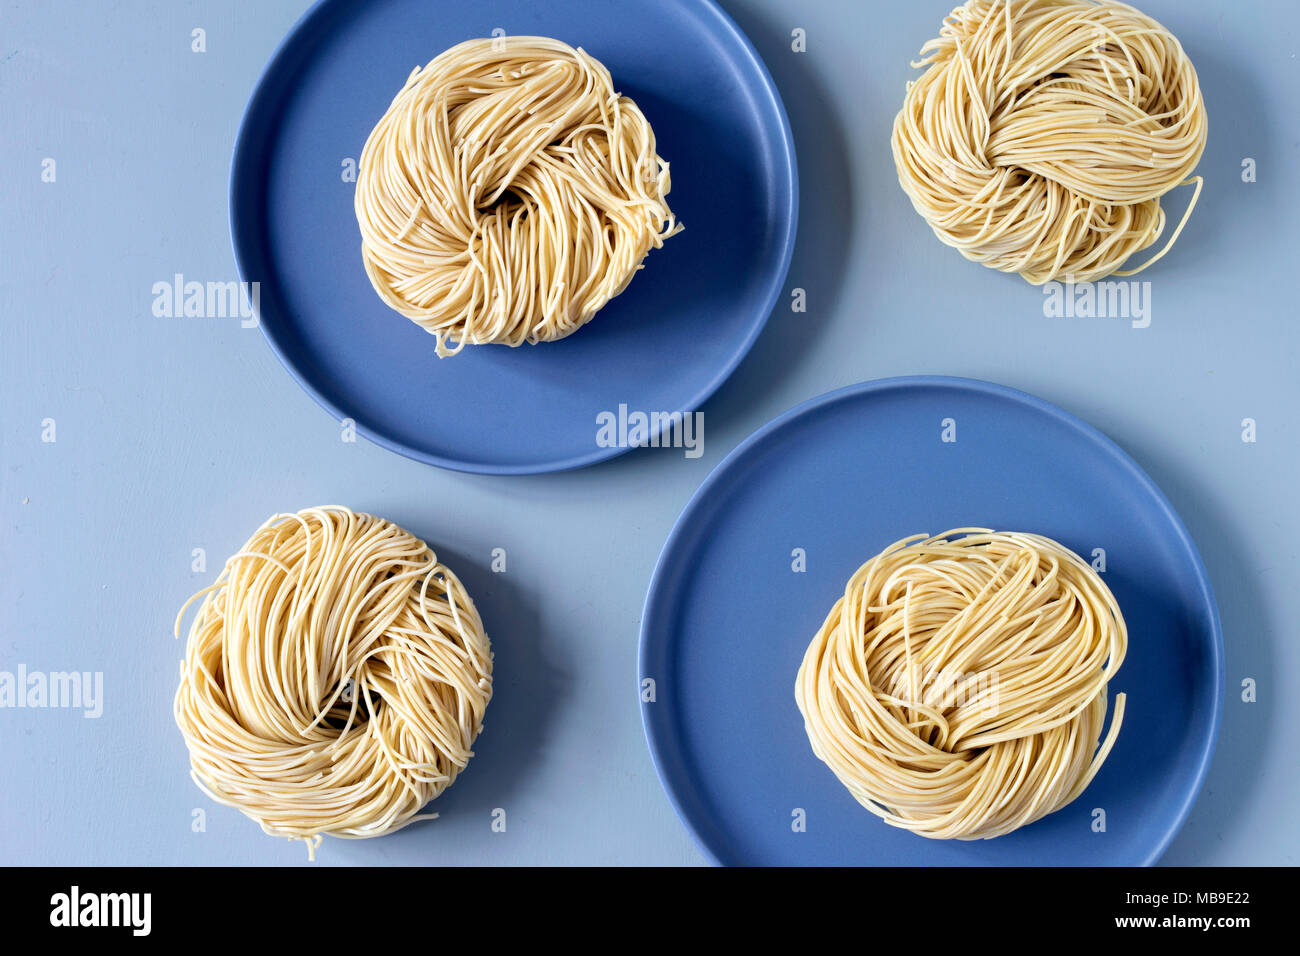 Noodles - Stock Image